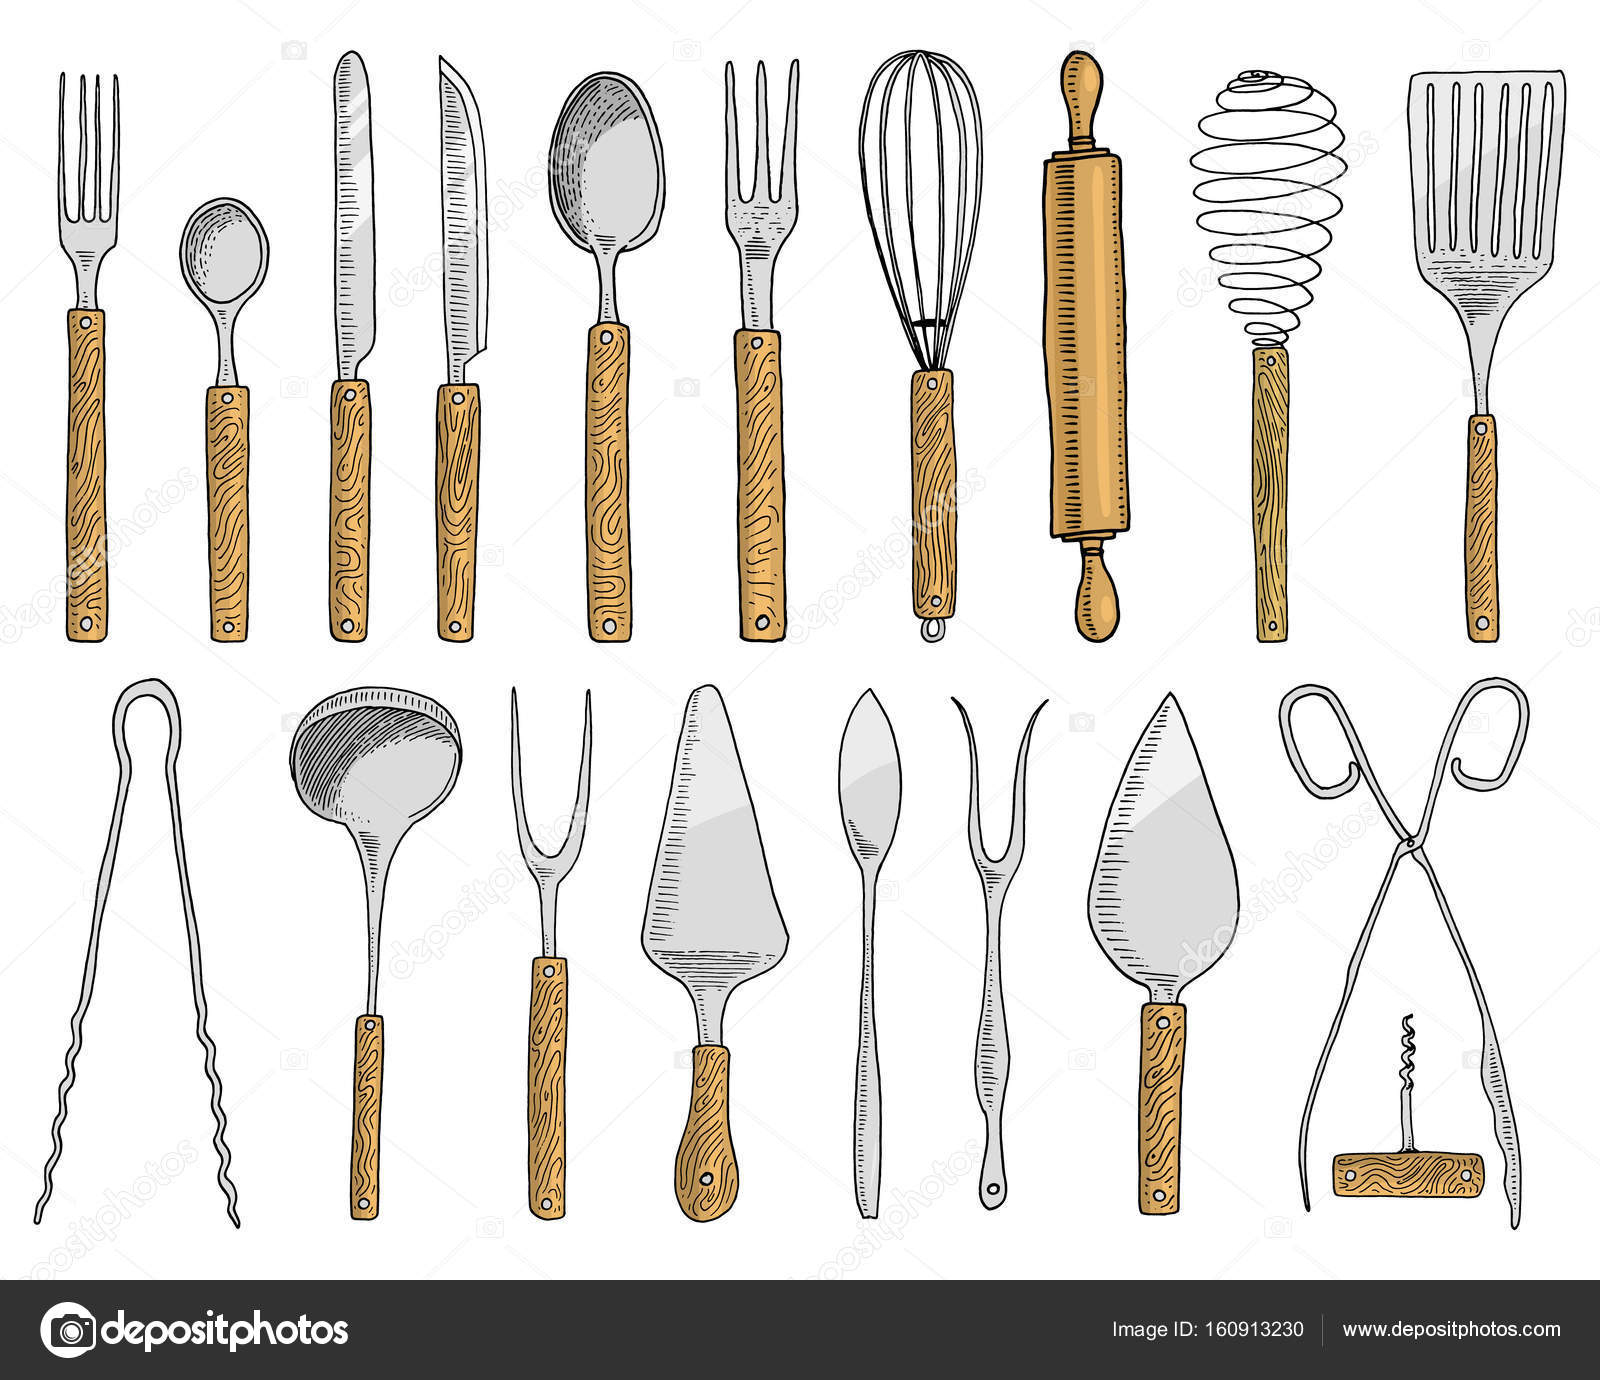 Restaurant Kitchen Utensils: Dining Or Snack Fork For Oysters, Ice Cream Spoon And Knife For Dessert Or Butter And Baking